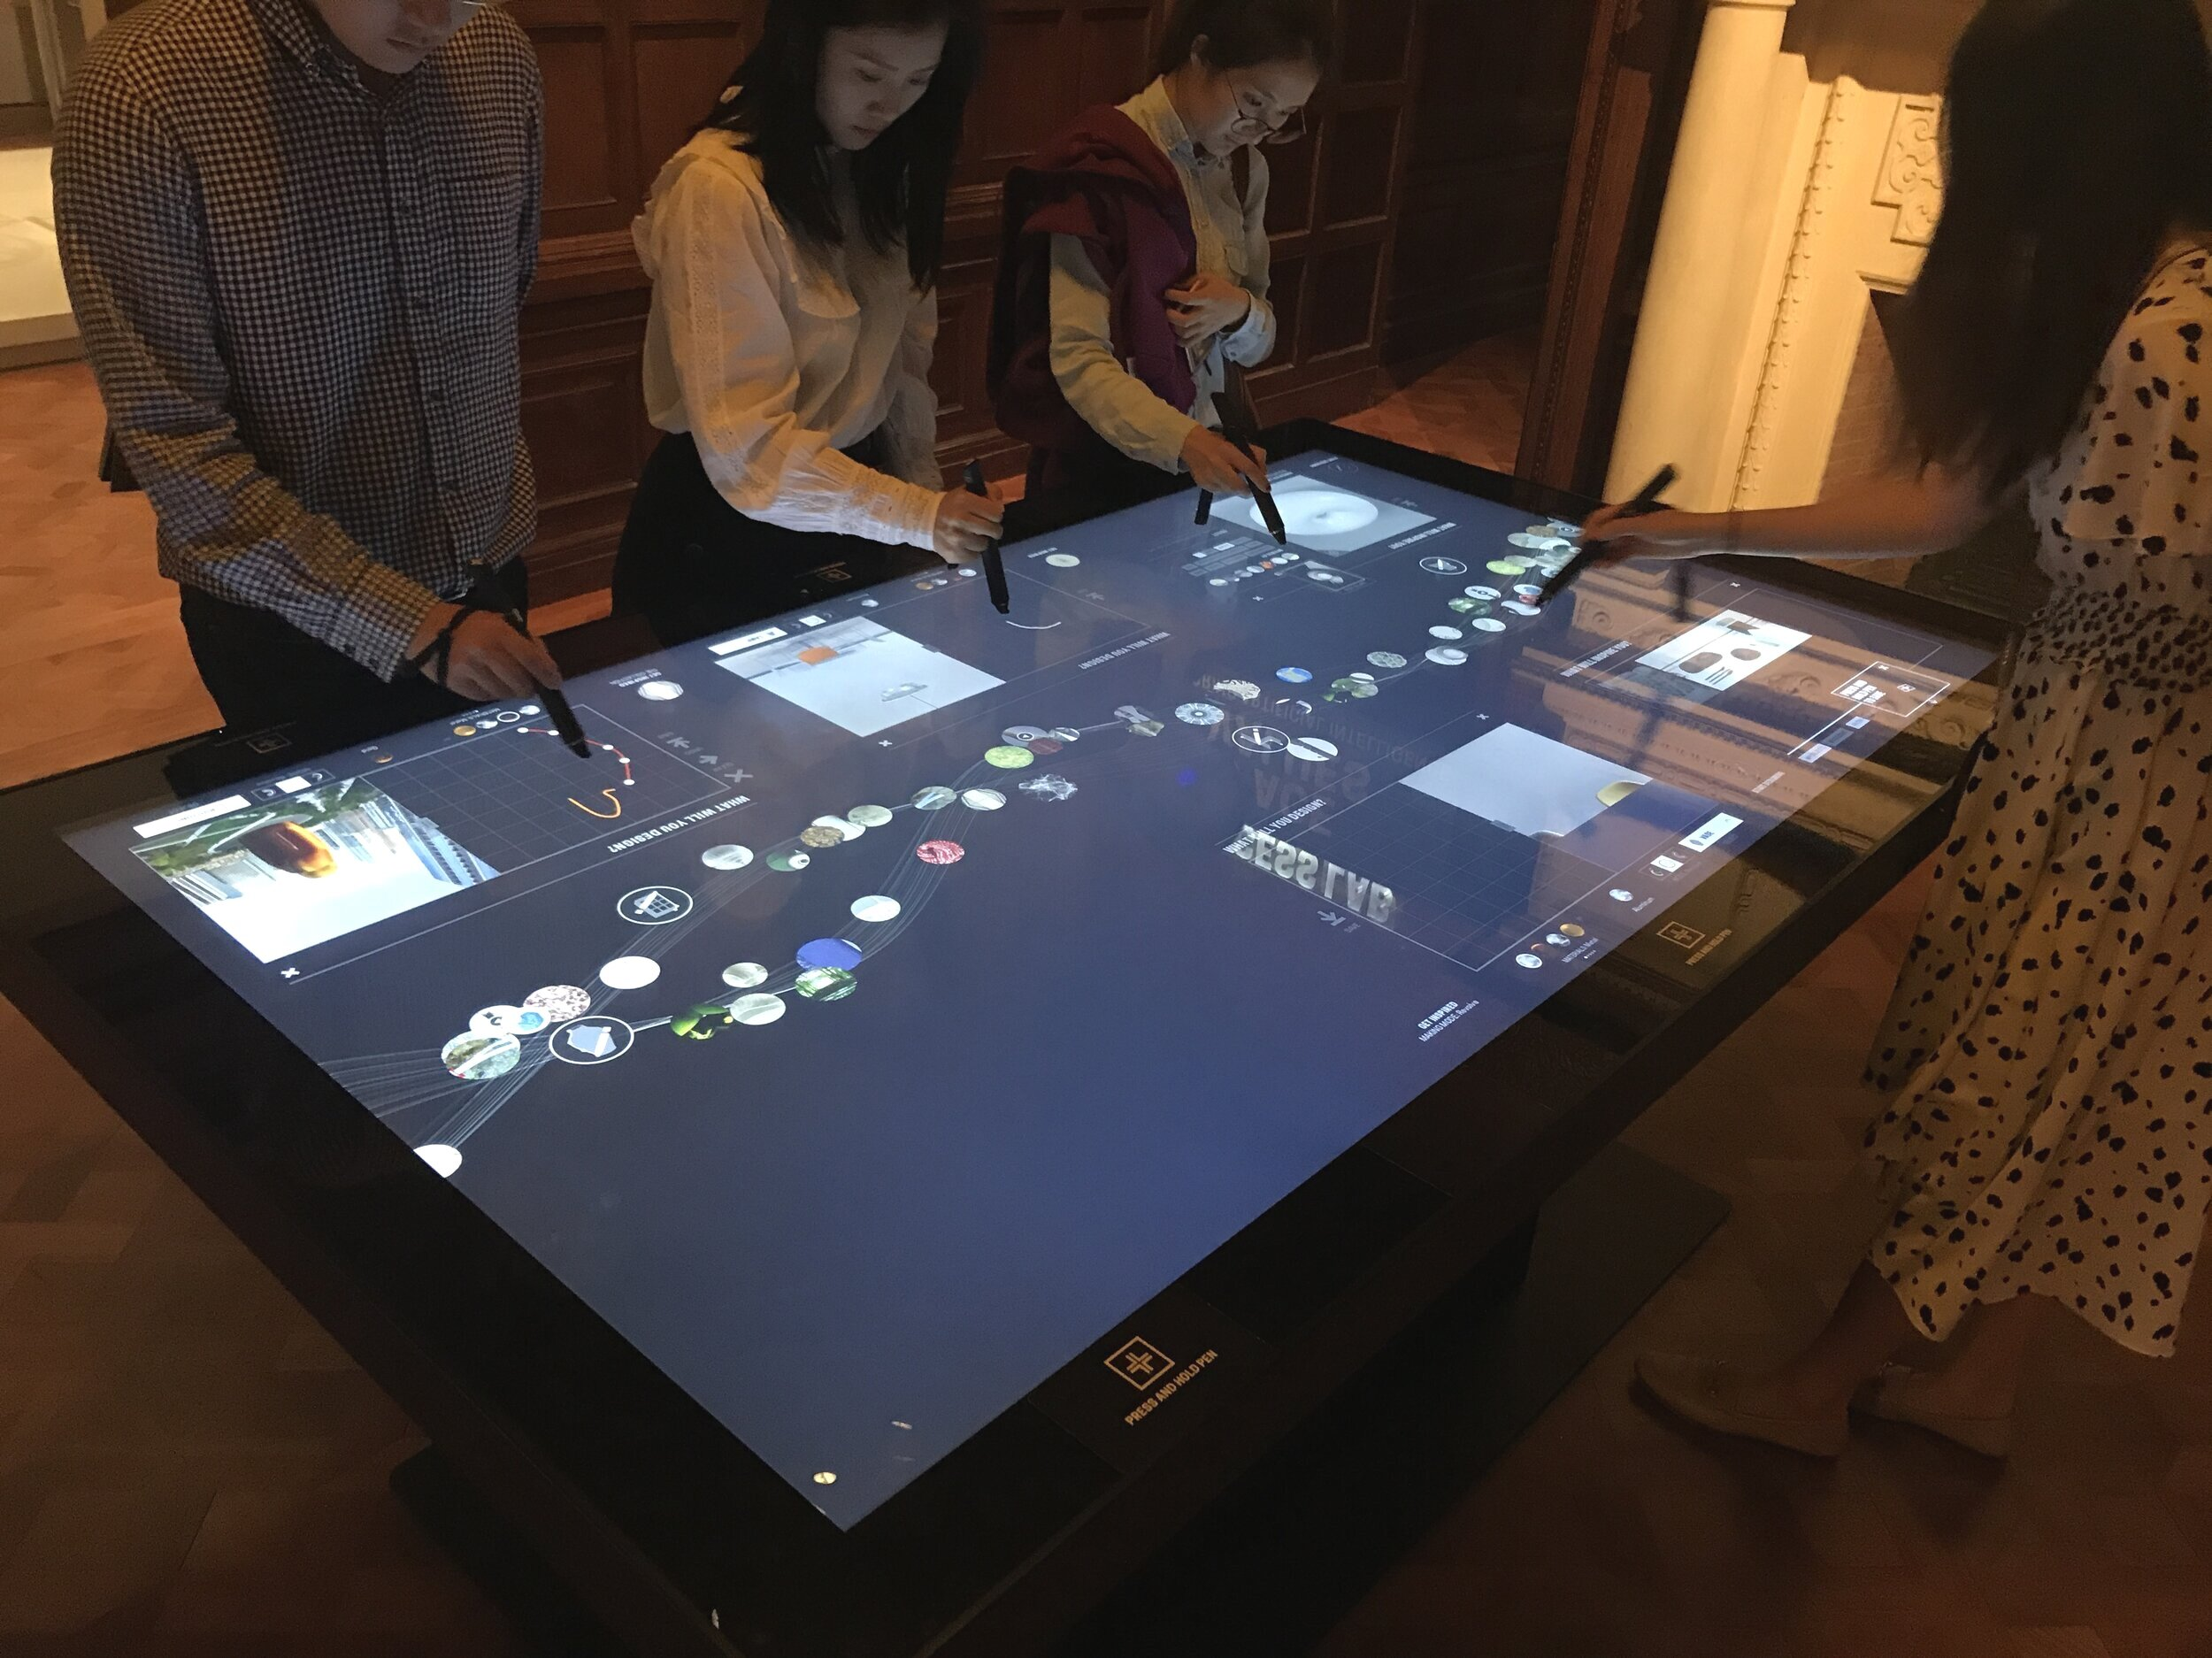 the interactive table act as a informative station for overall exhibition, also as a part of the mapping design for the pen as an information collecting device